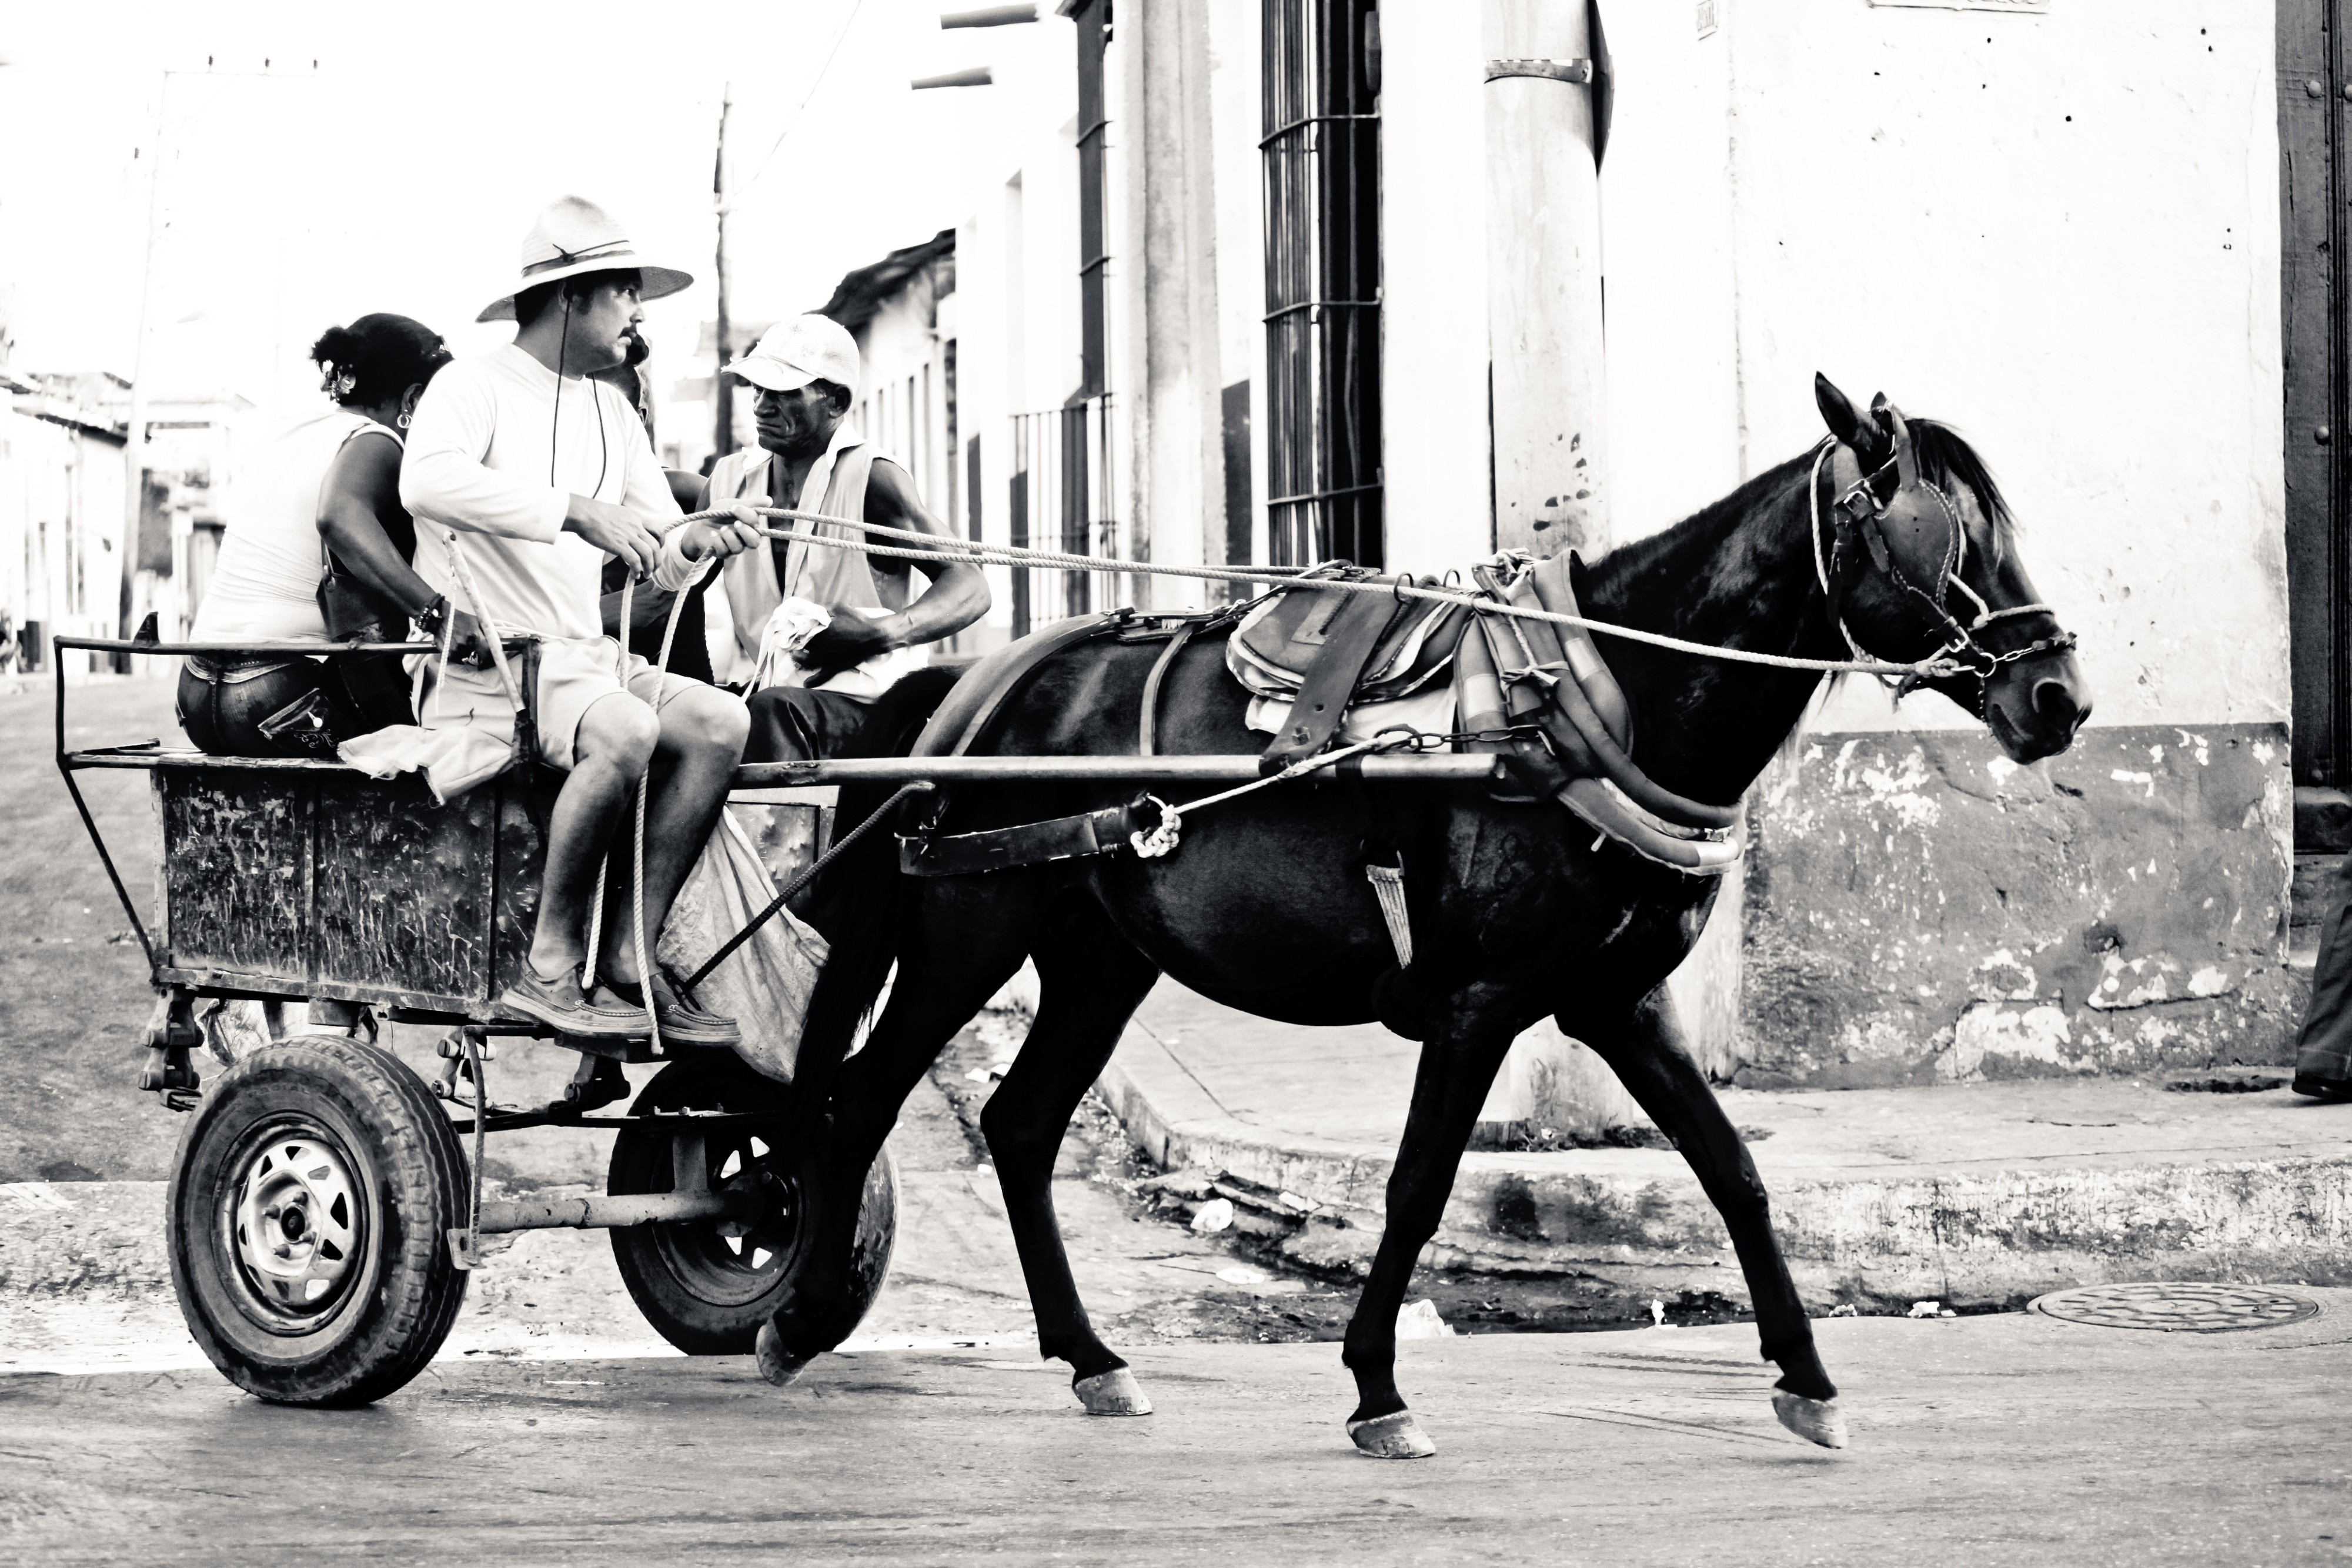 photos from the roads: Cuba